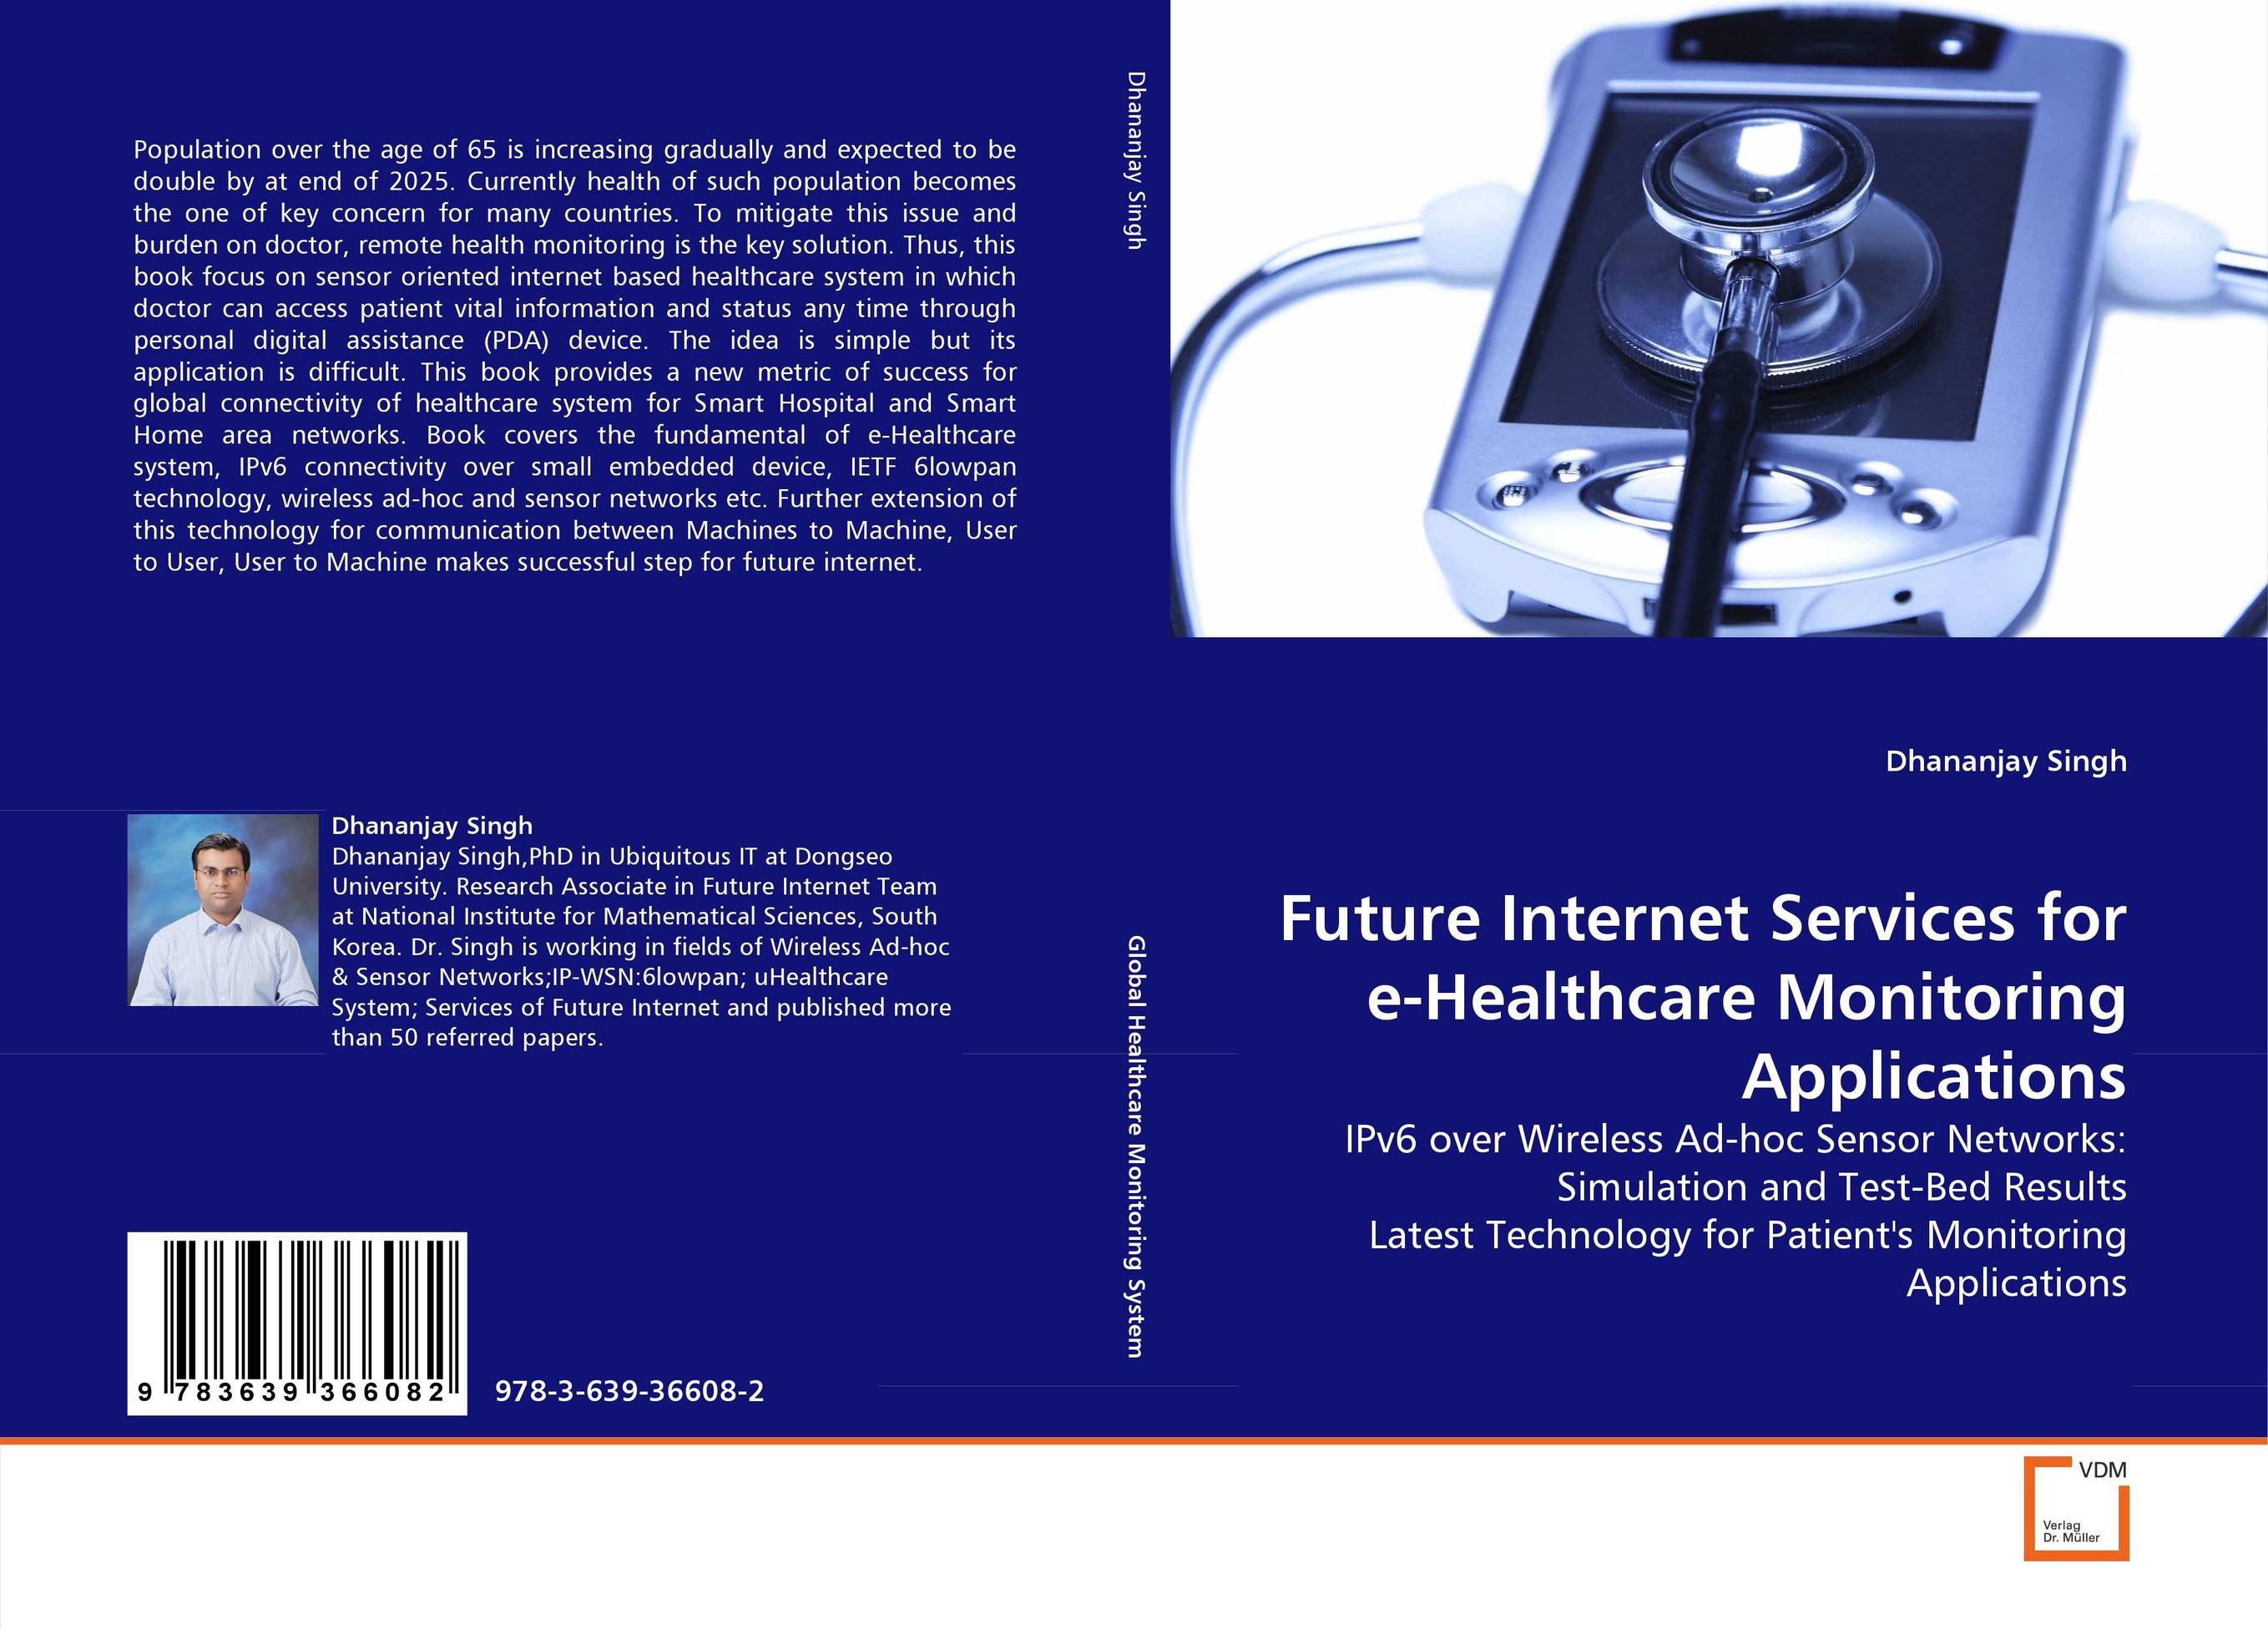 Future Internet Services for e-Healthcare Monitoring Applications infrared light breast scanning device for the women self examination and home healthcare and beauty